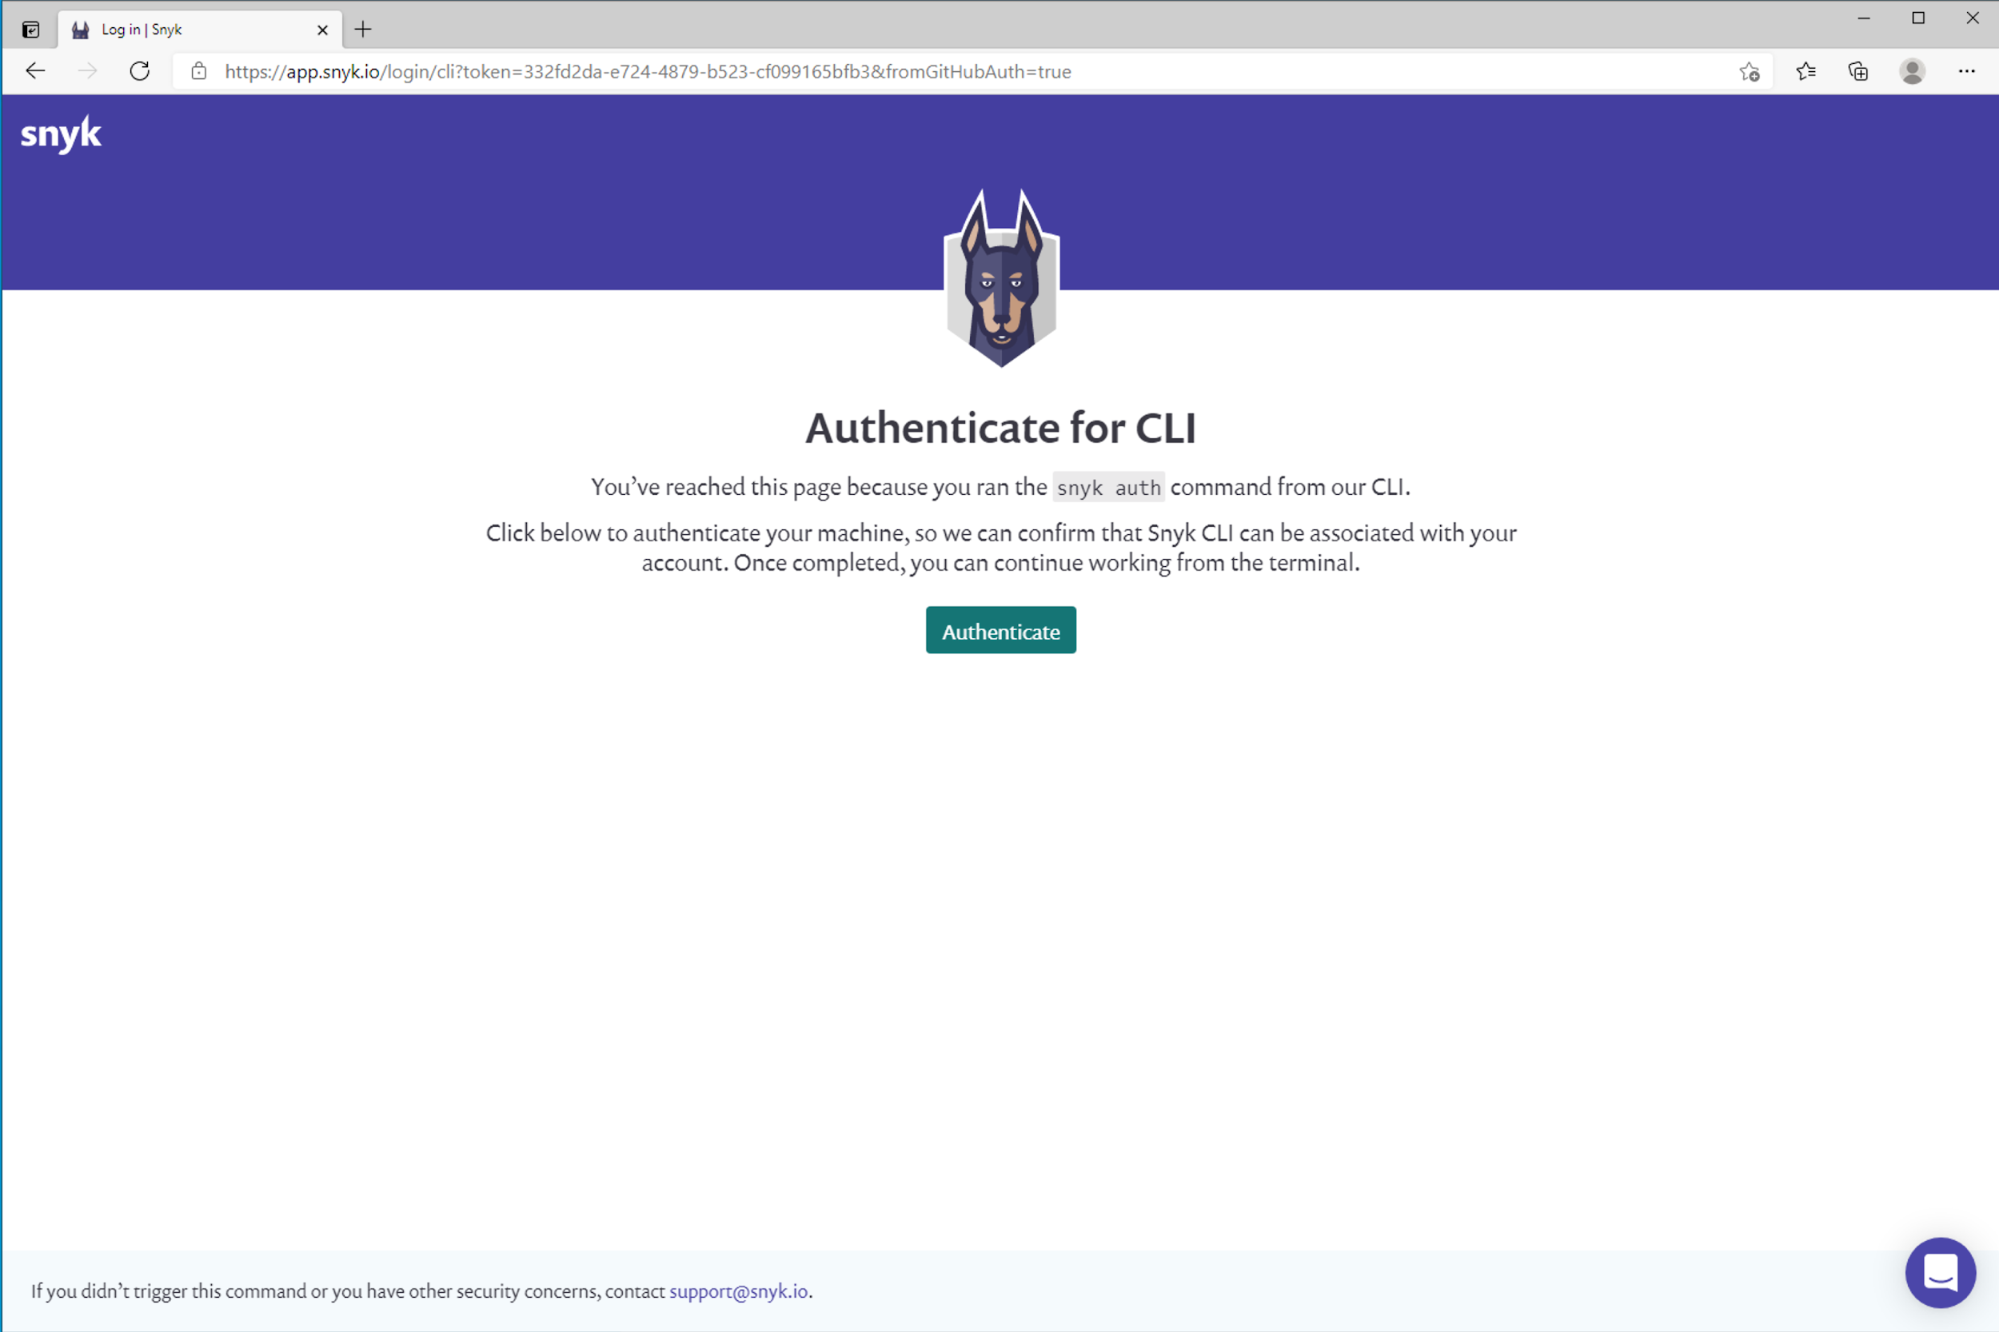 Authenticate on webseite